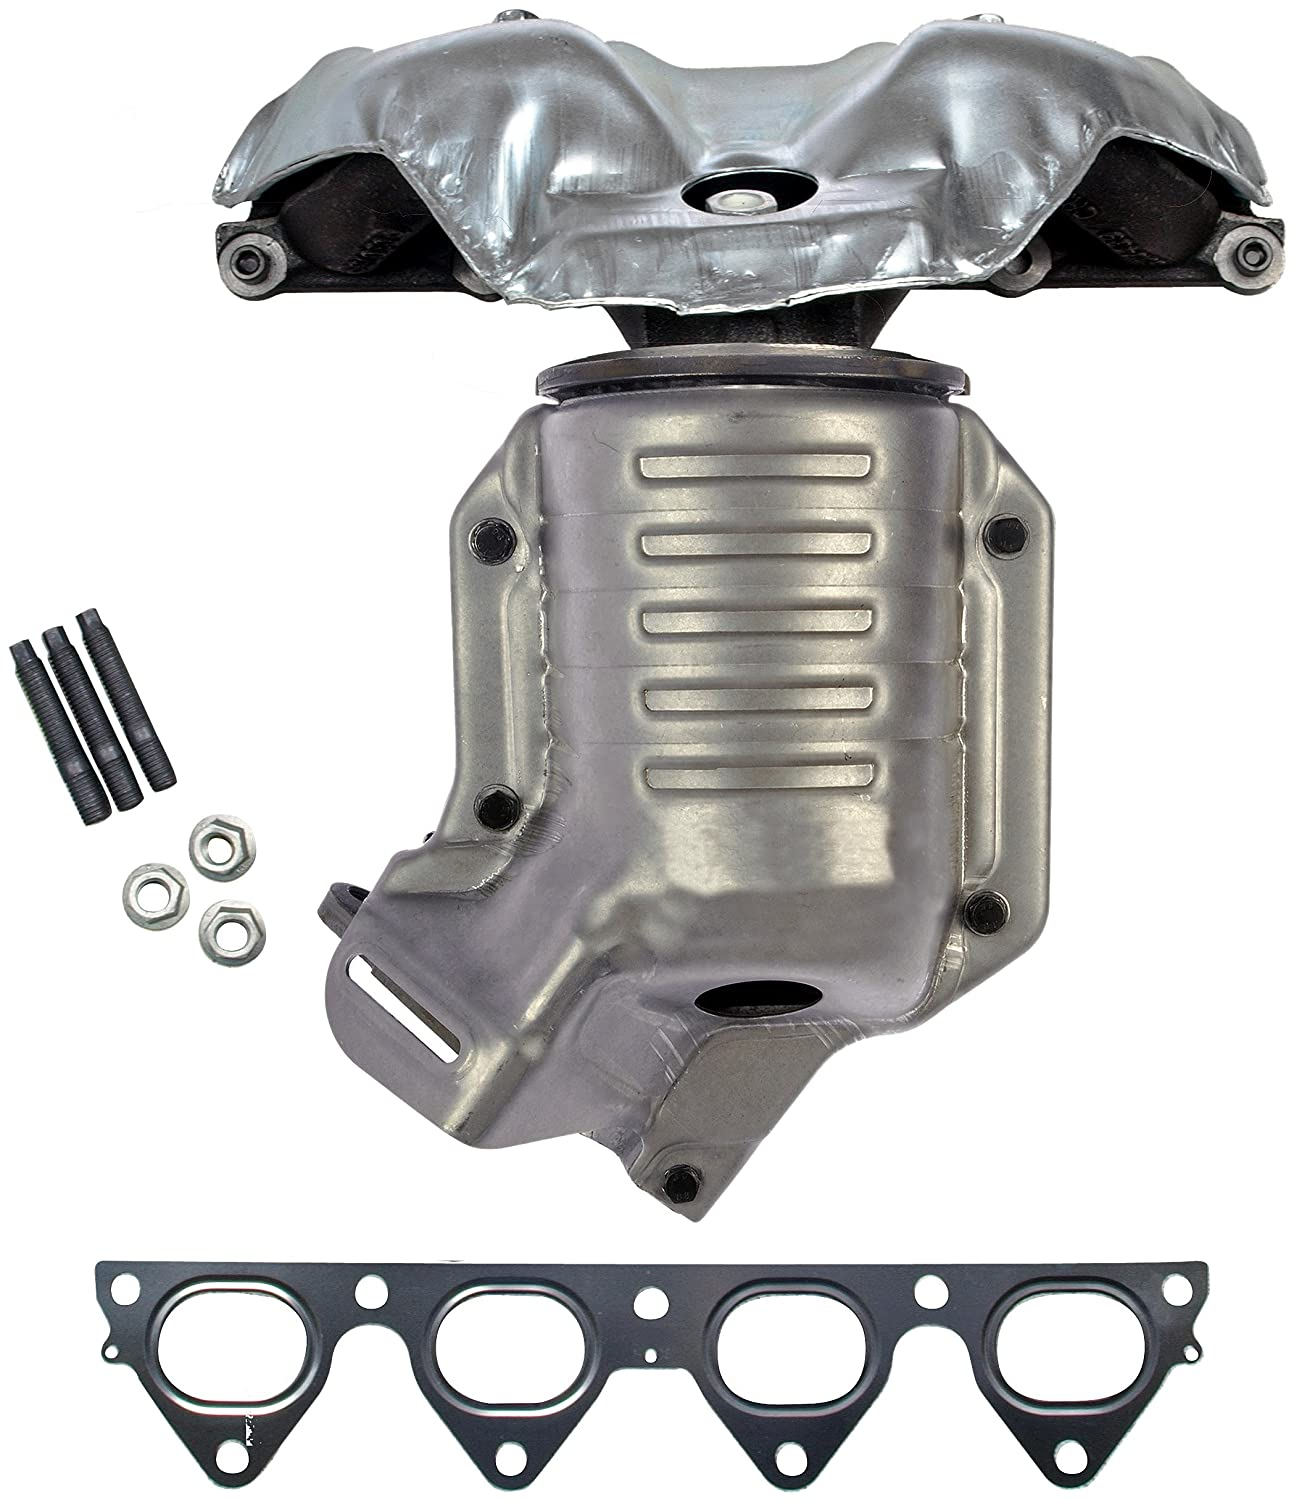 Amazon dorman 673 439 exhaust manifold with integrated amazon dorman 673 439 exhaust manifold with integrated catalytic converter carb compliant automotive fandeluxe Gallery